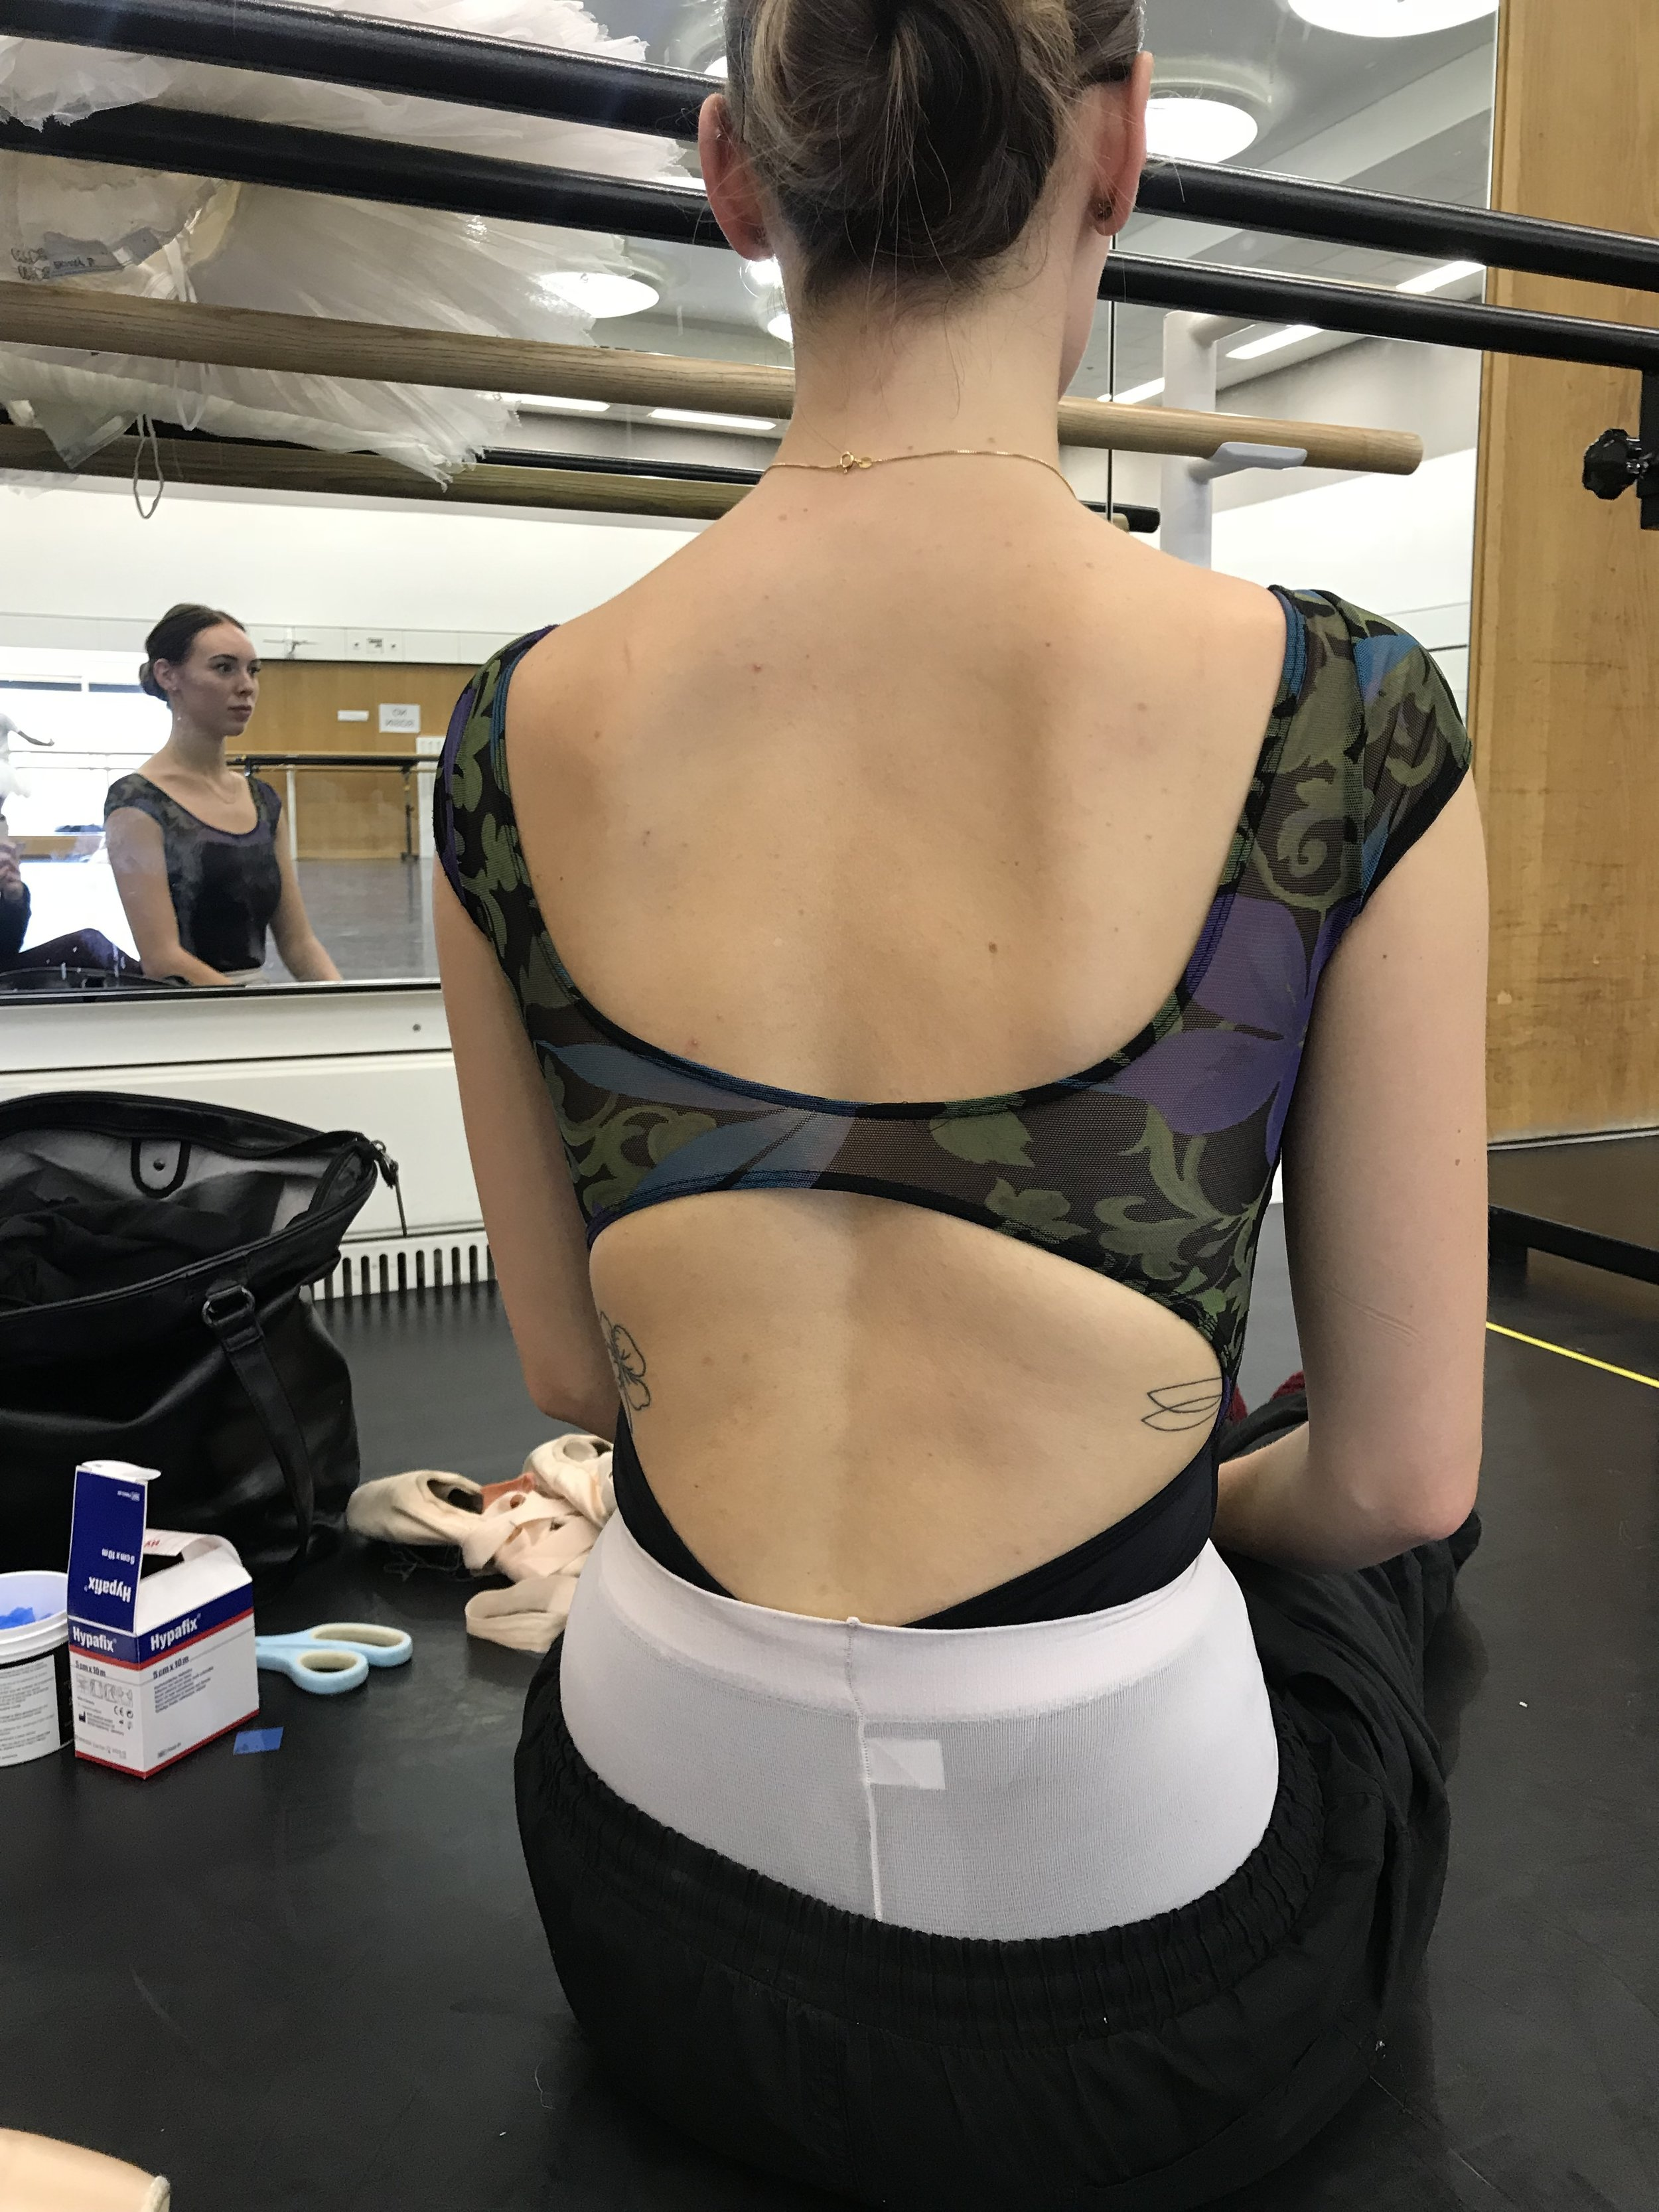 Love how you can see hints of Grace's tattoos with this design of leotard.